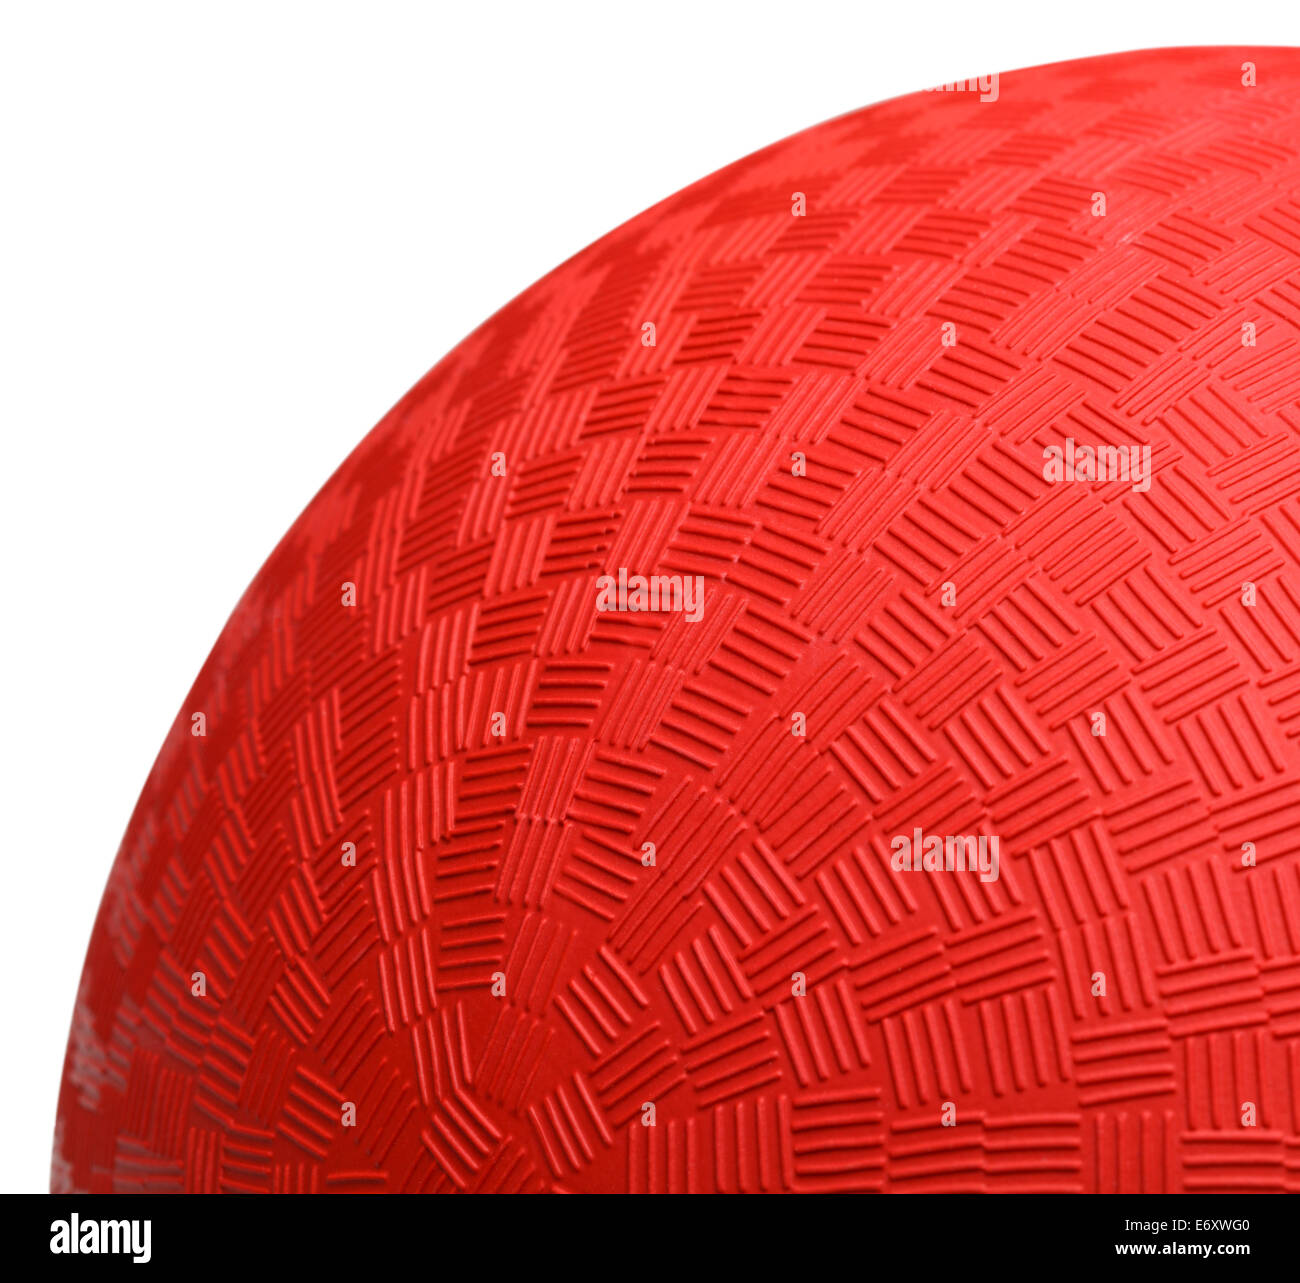 Close up Section of Red Dodge Ball Isolated on White Background. - Stock Image